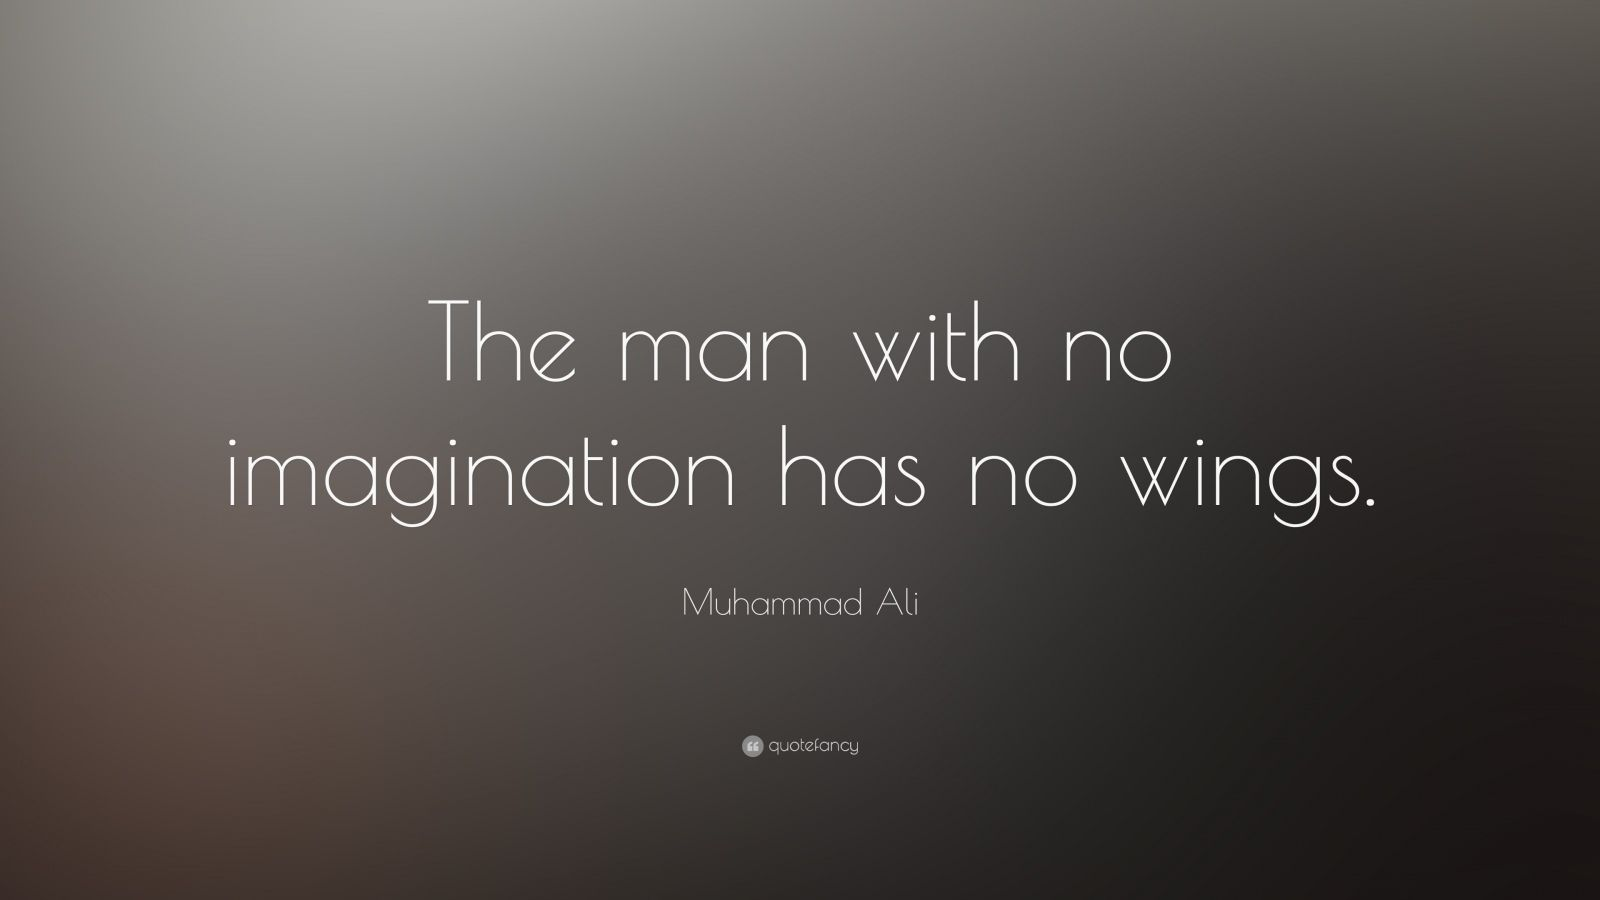 Football Motivational Quotes Wallpaper Muhammad Ali Quote The Man With No Imagination Has No